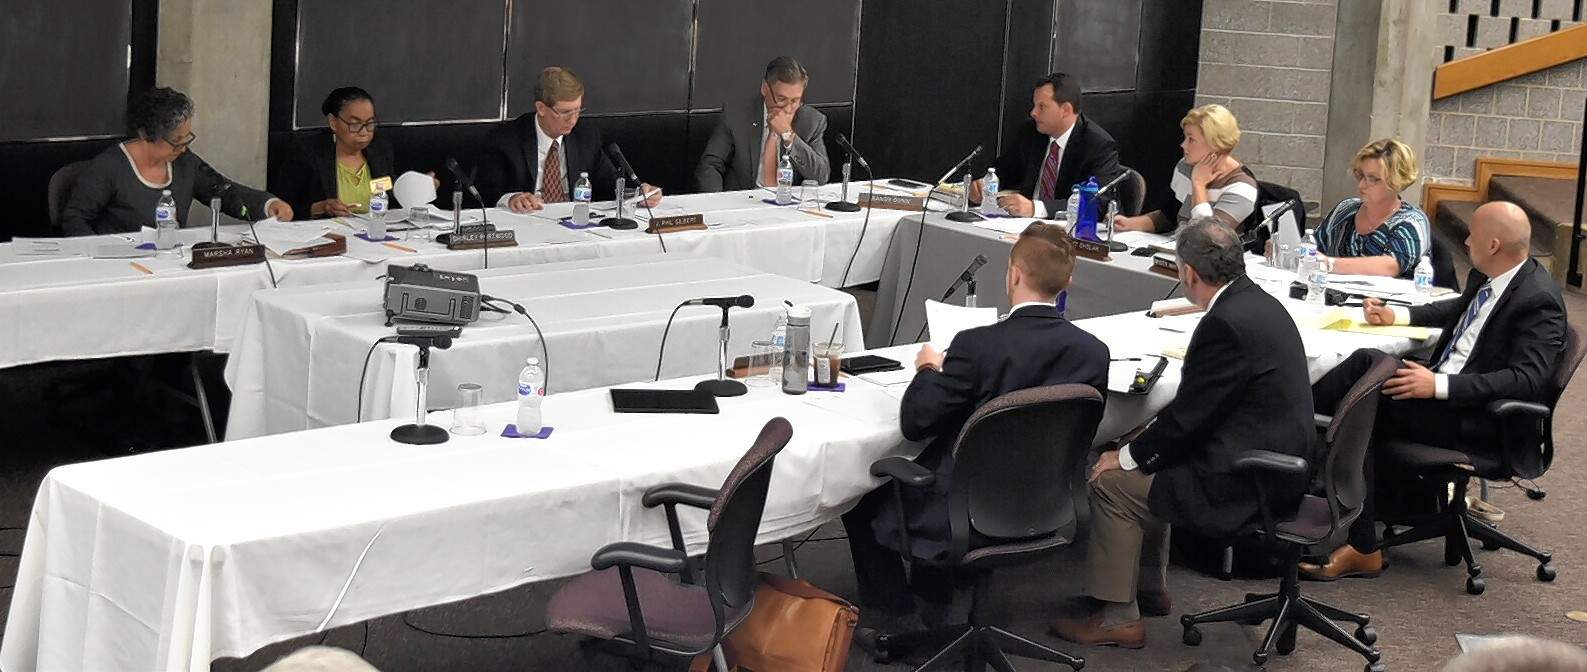 Members of the SIU Board of Trustees meet Wednesday at the SIU School of Medicine in Springfield.